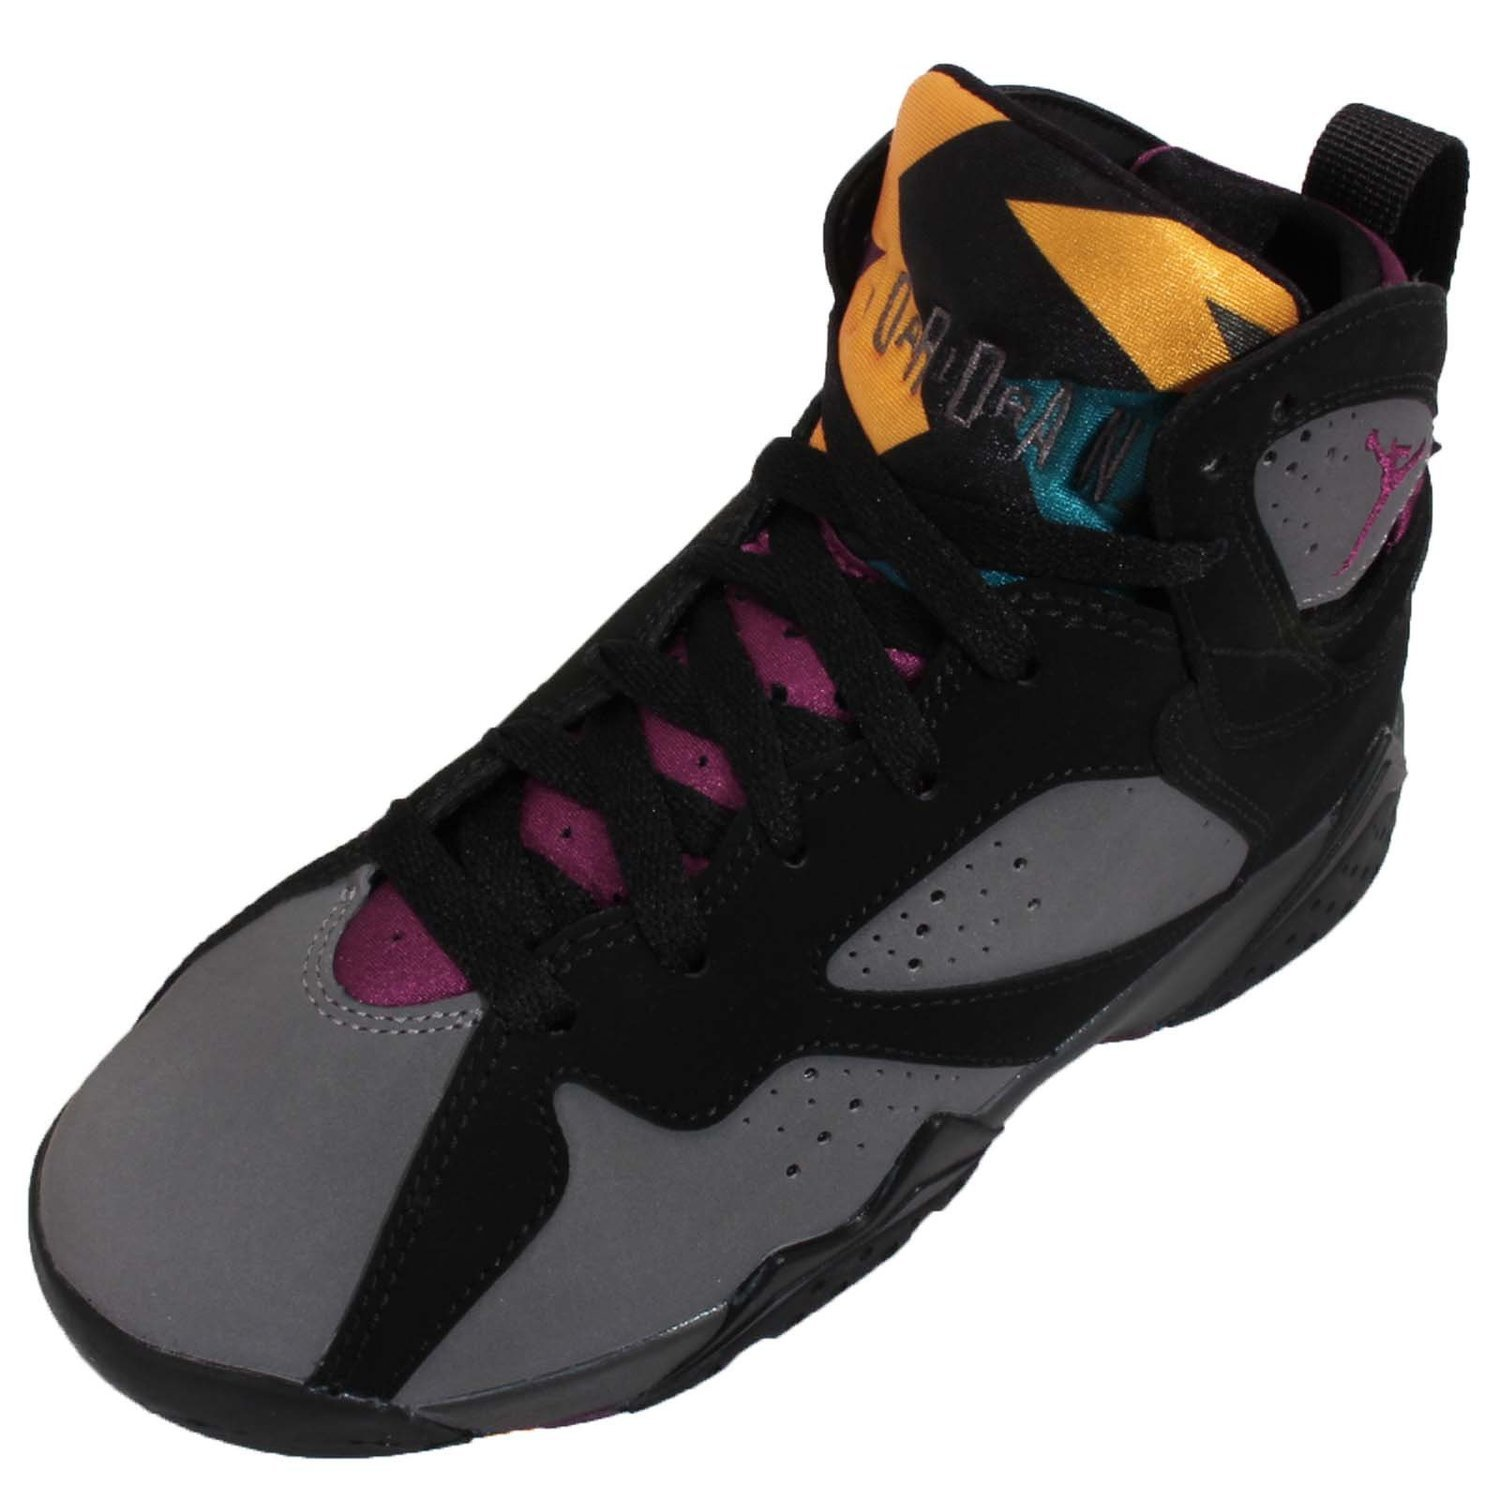 Black   Bordeaux-Light Graphite-Midnight fog Nike Men's Air Jordan 5 Retro Basketball shoes